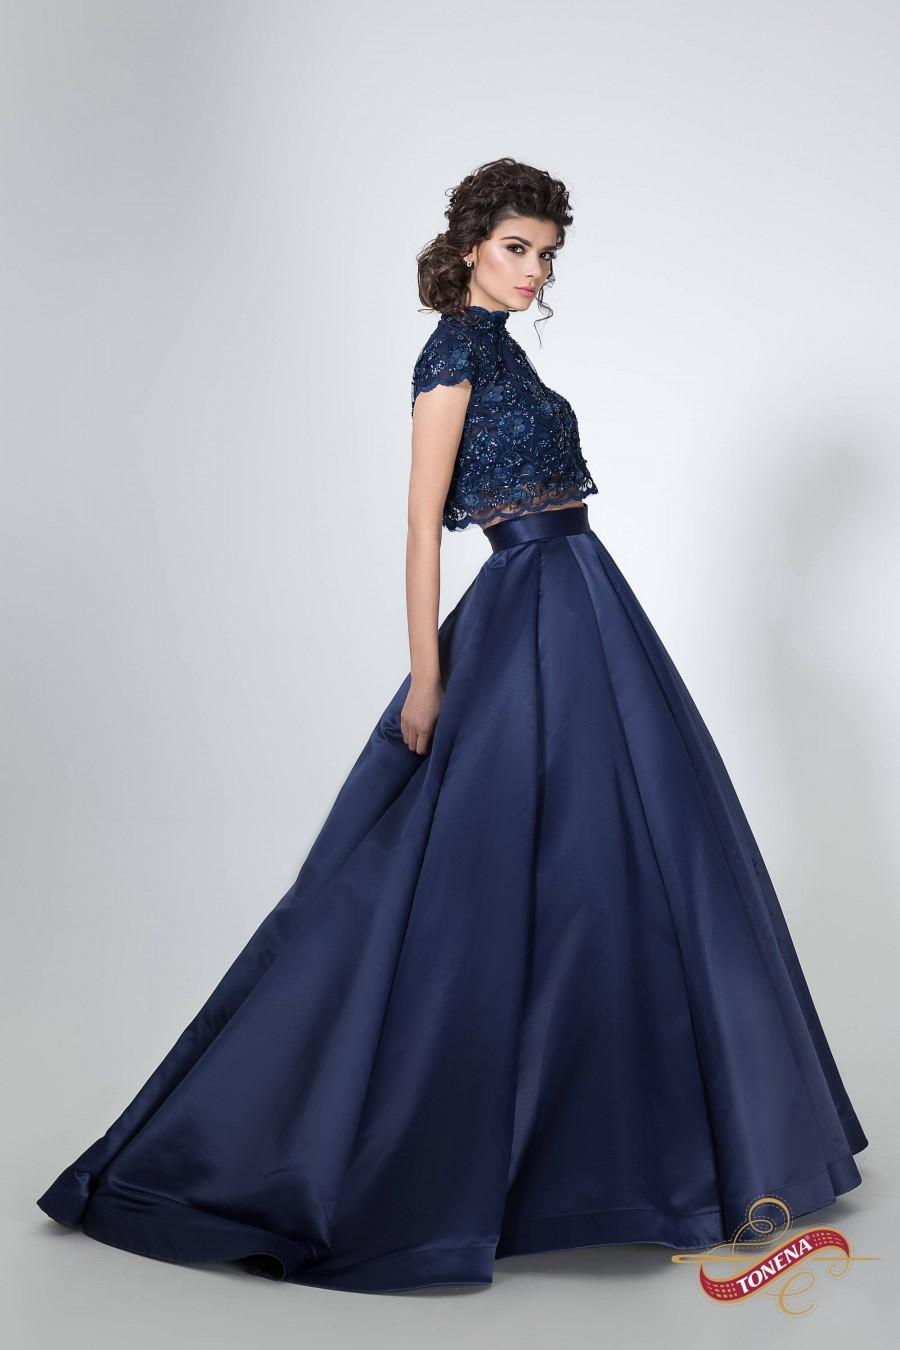 Mariage - Two piece lace and satin dress, Navy blue evening dress, Cap sleeves prom dress, Crop top and skirt set Floral lace bodice Long evening gown